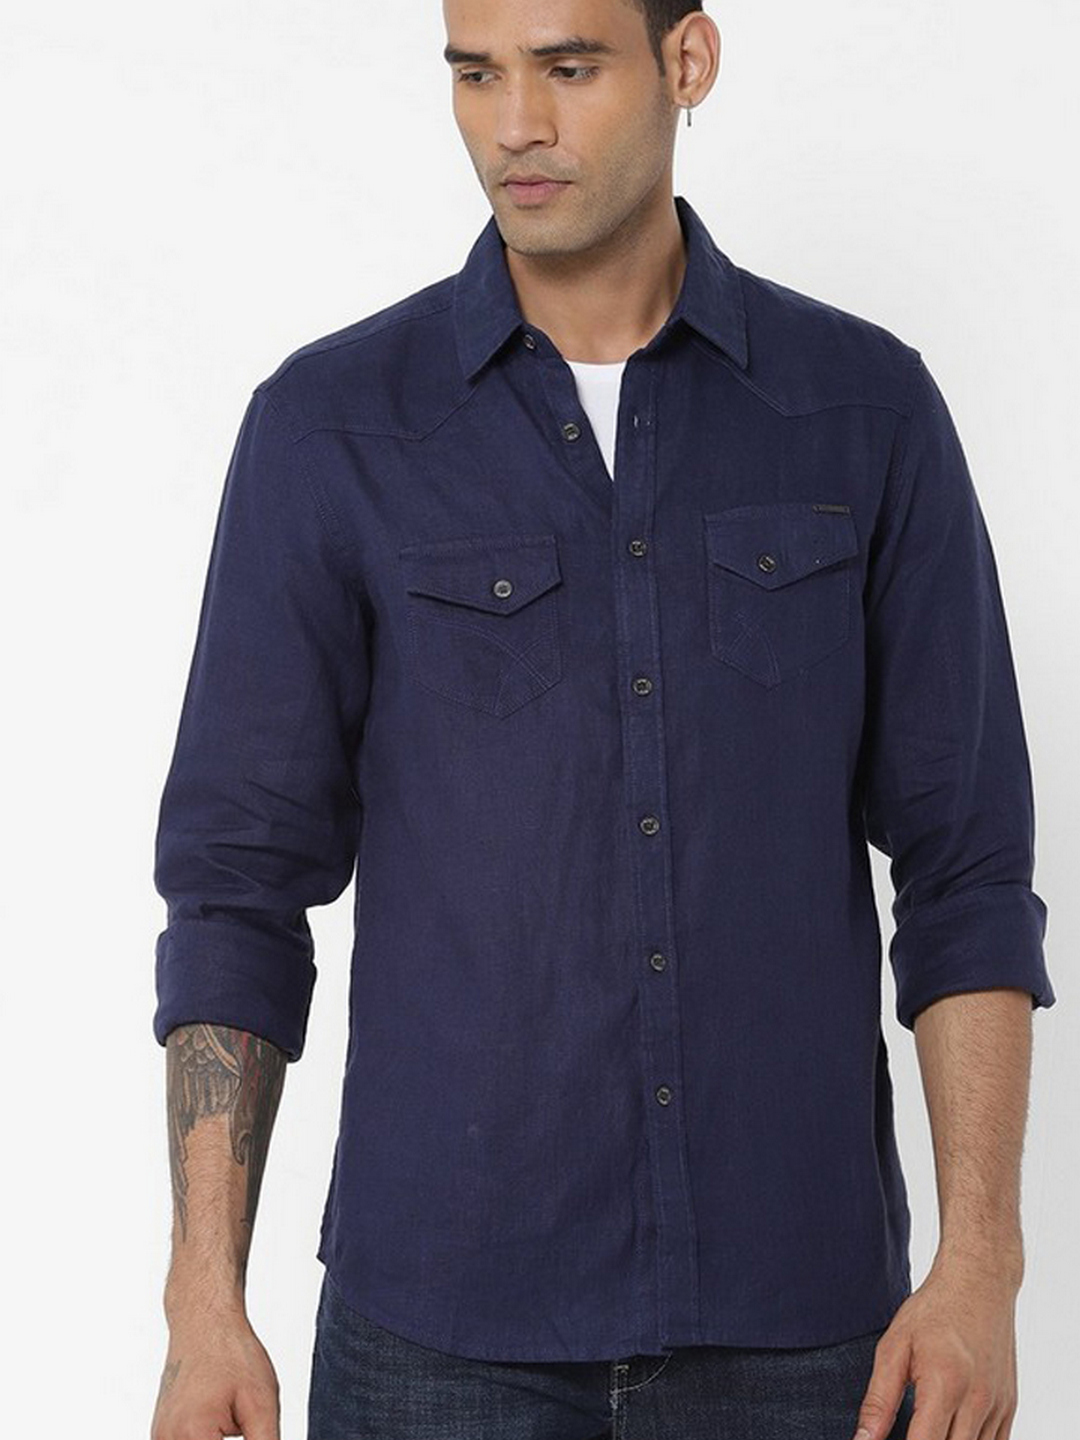 Men's Kant S/S blue linen shirt